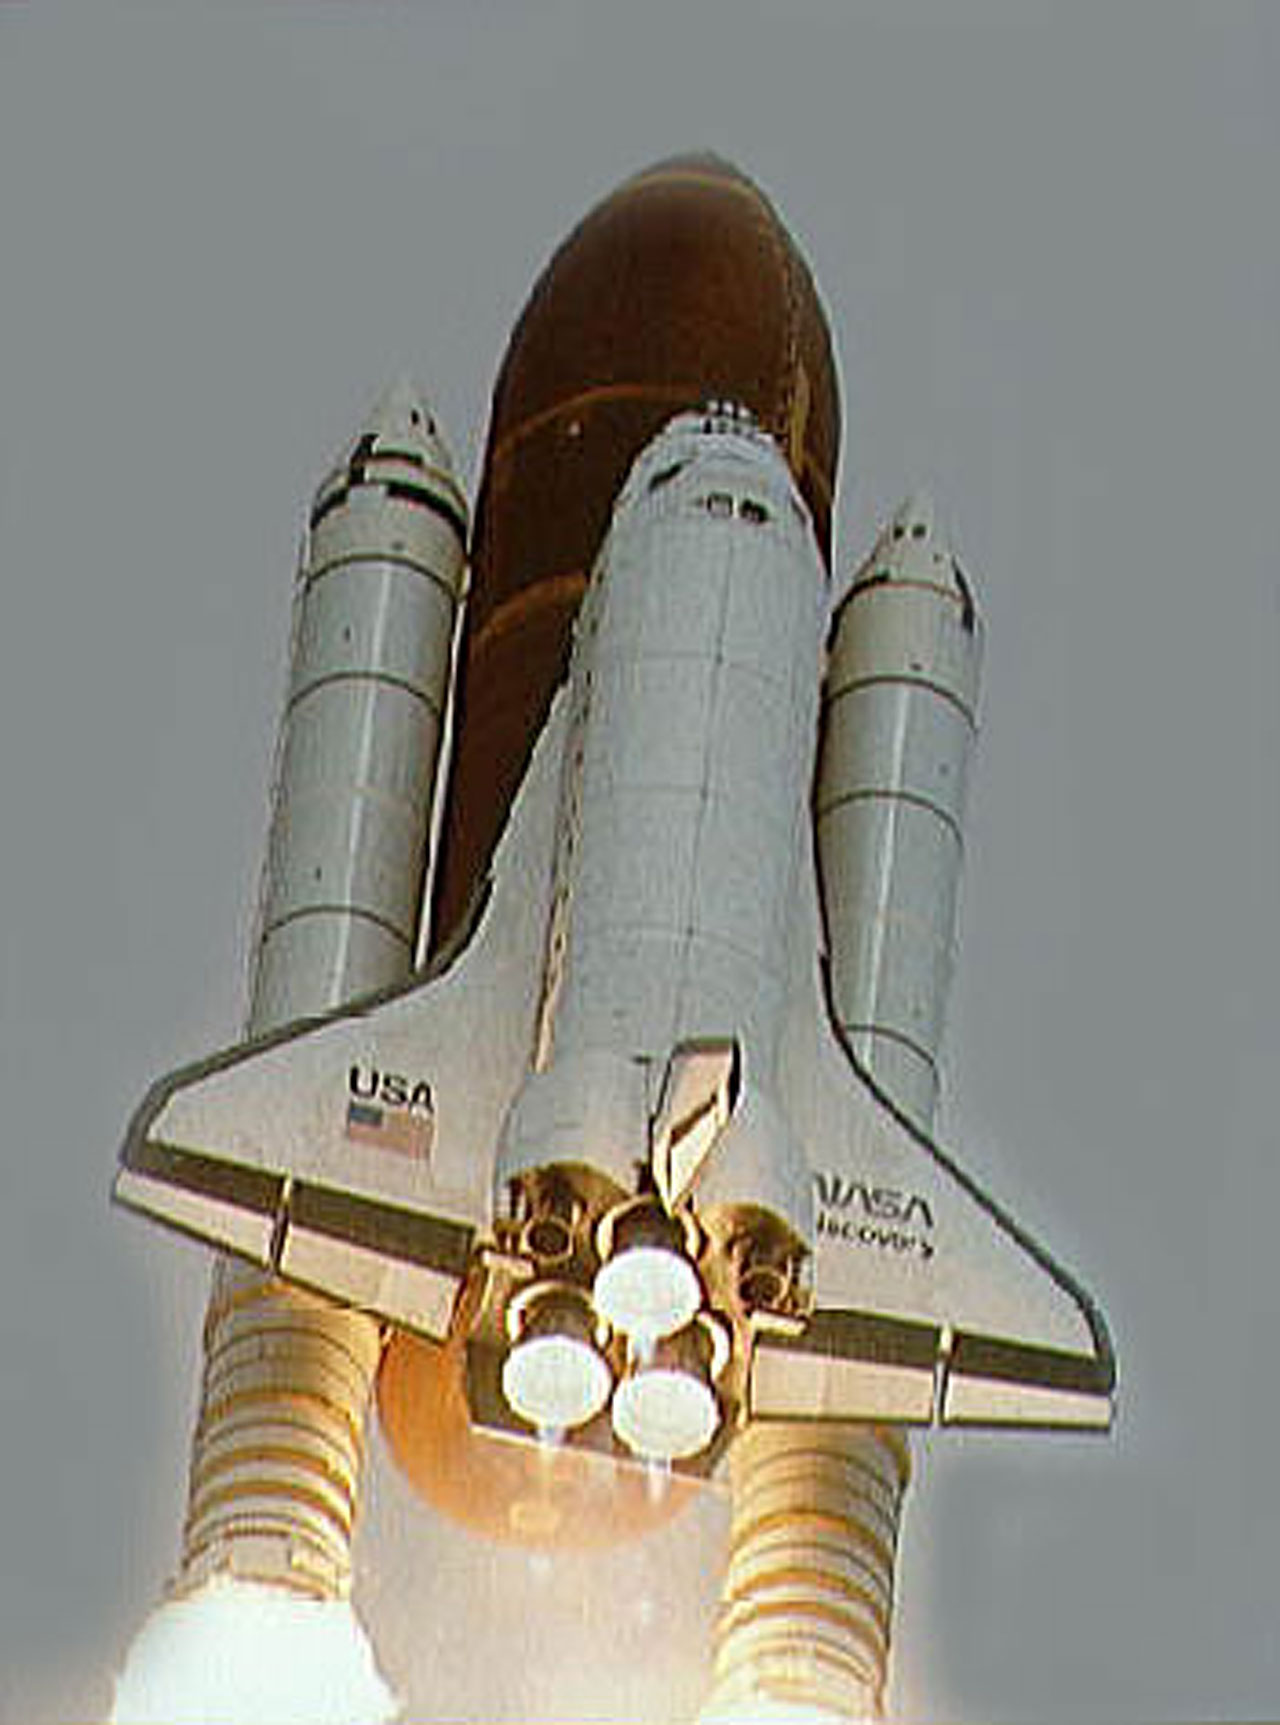 space shuttle discovery timeline - photo #26